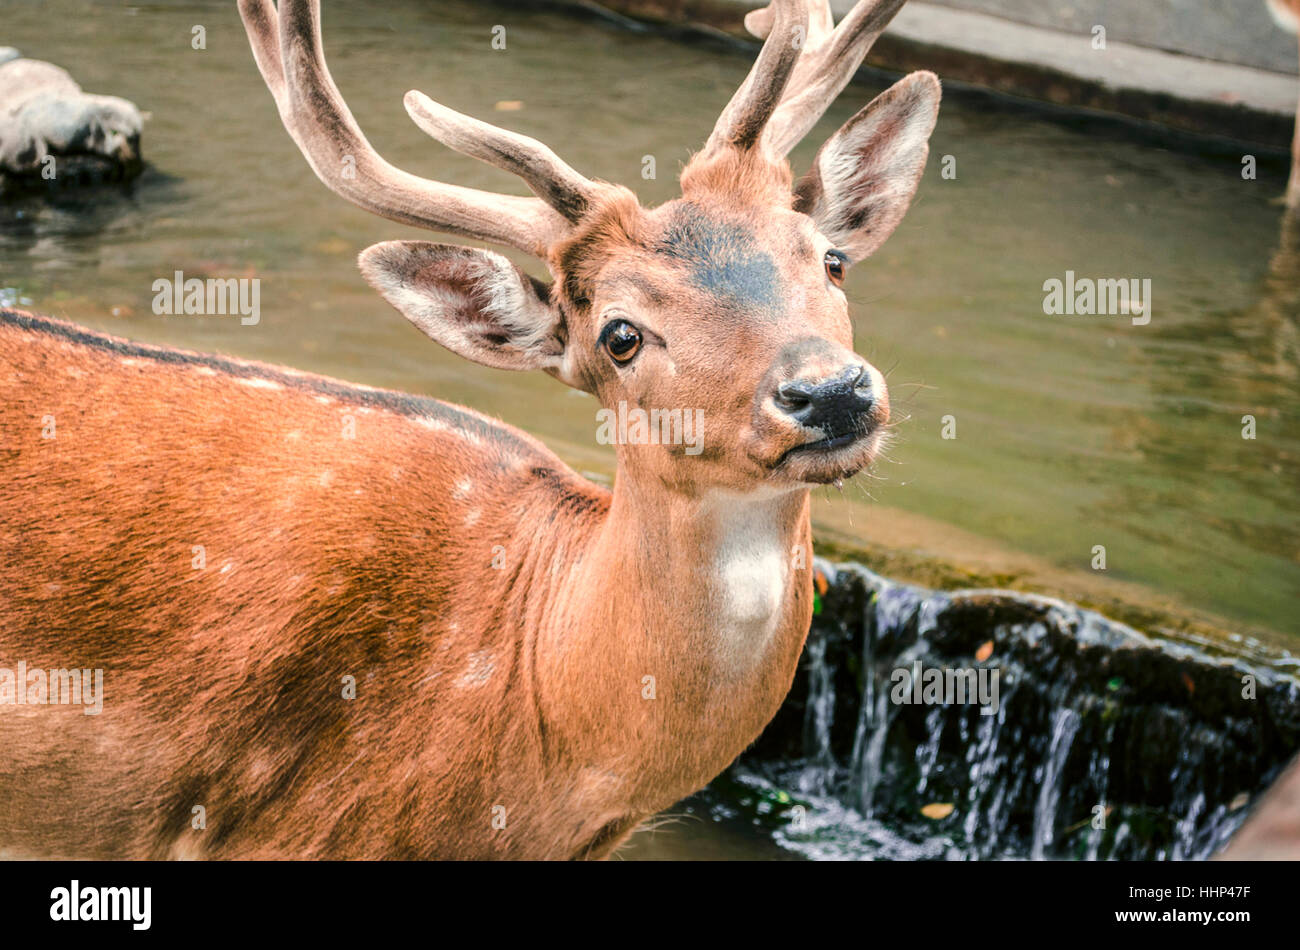 Young spotted redheaded deer with new velvety horns in water - Stock Image